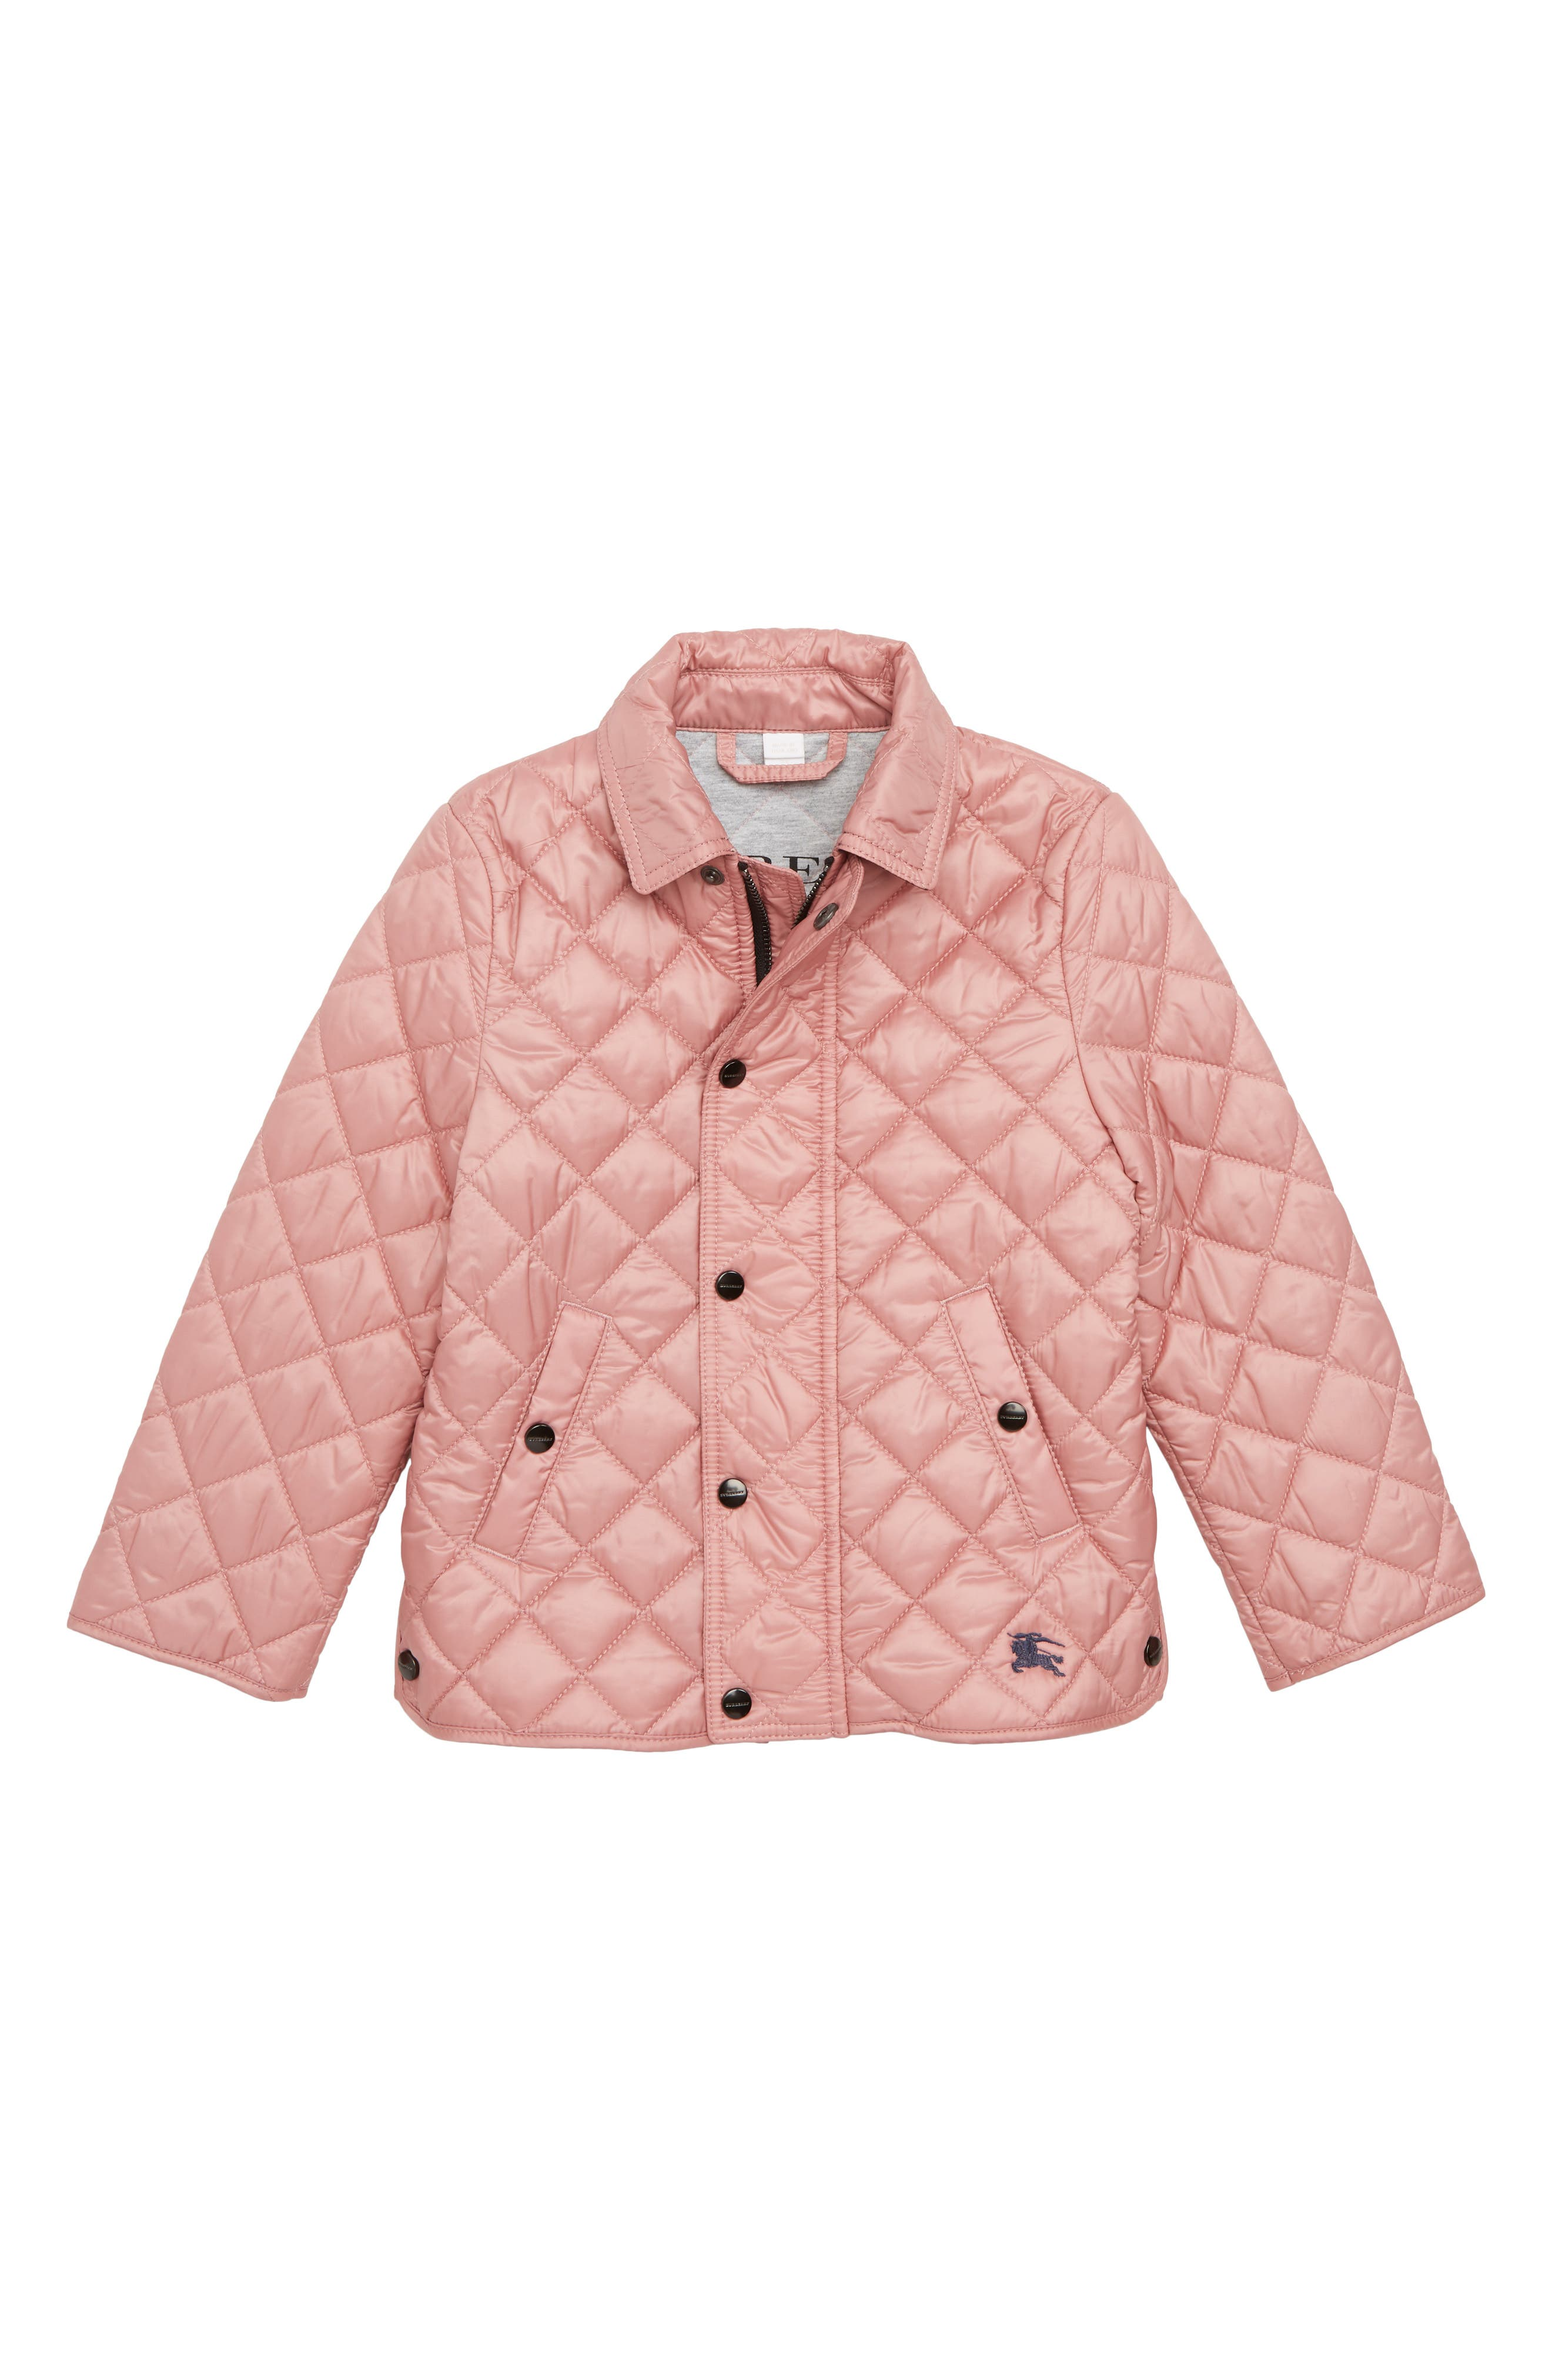 Diamond Quilted Jacket,                         Main,                         color, PALE ASH ROSE